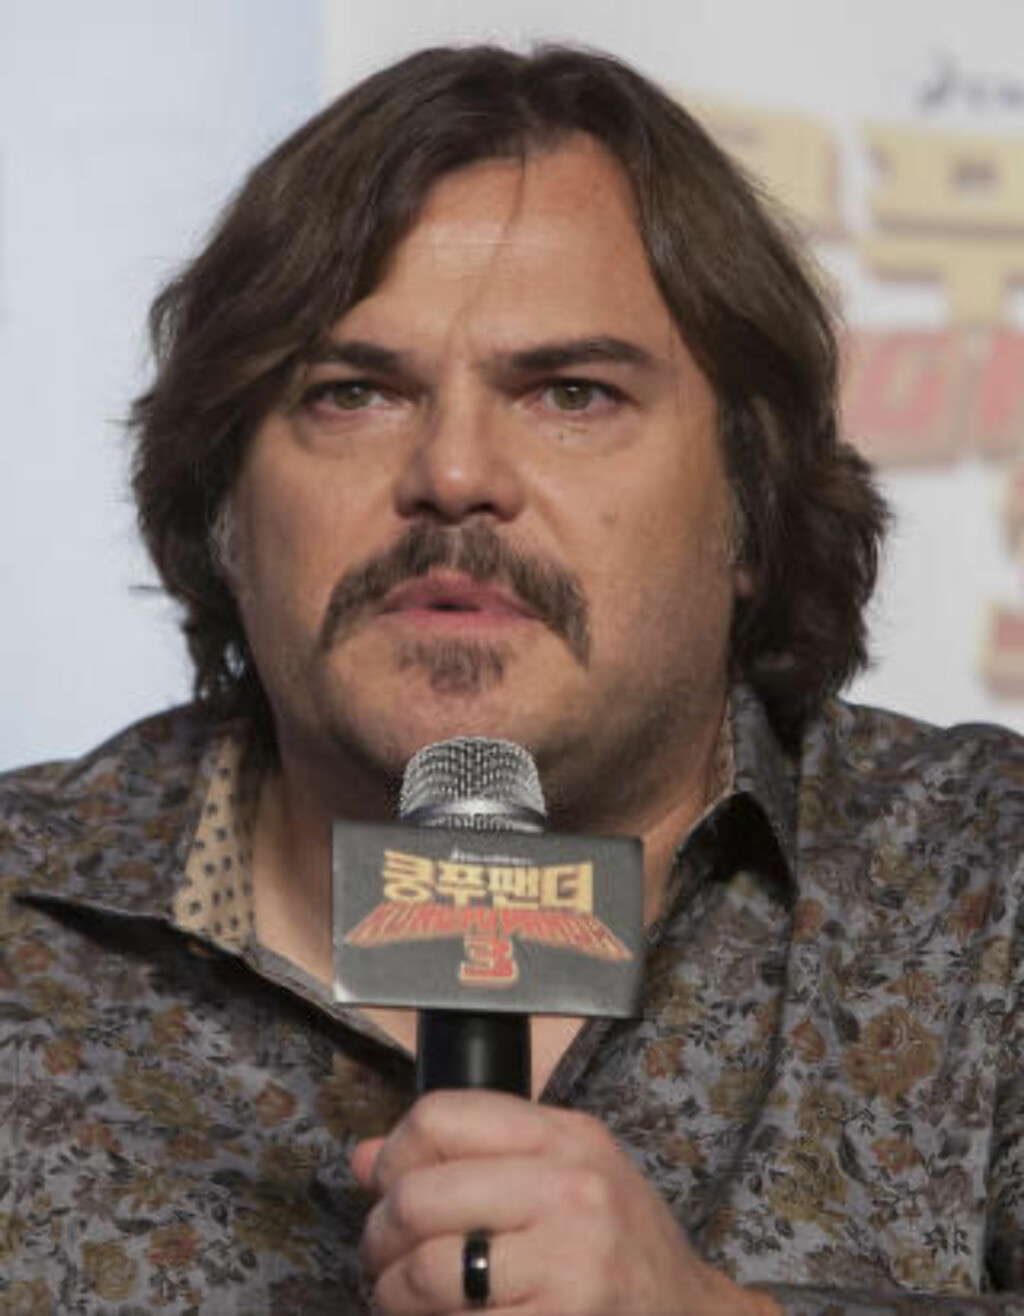 MOROMANN: Men også Jack Black har hatt en rolle i «The X-Files». Foto: Lee Young-ho